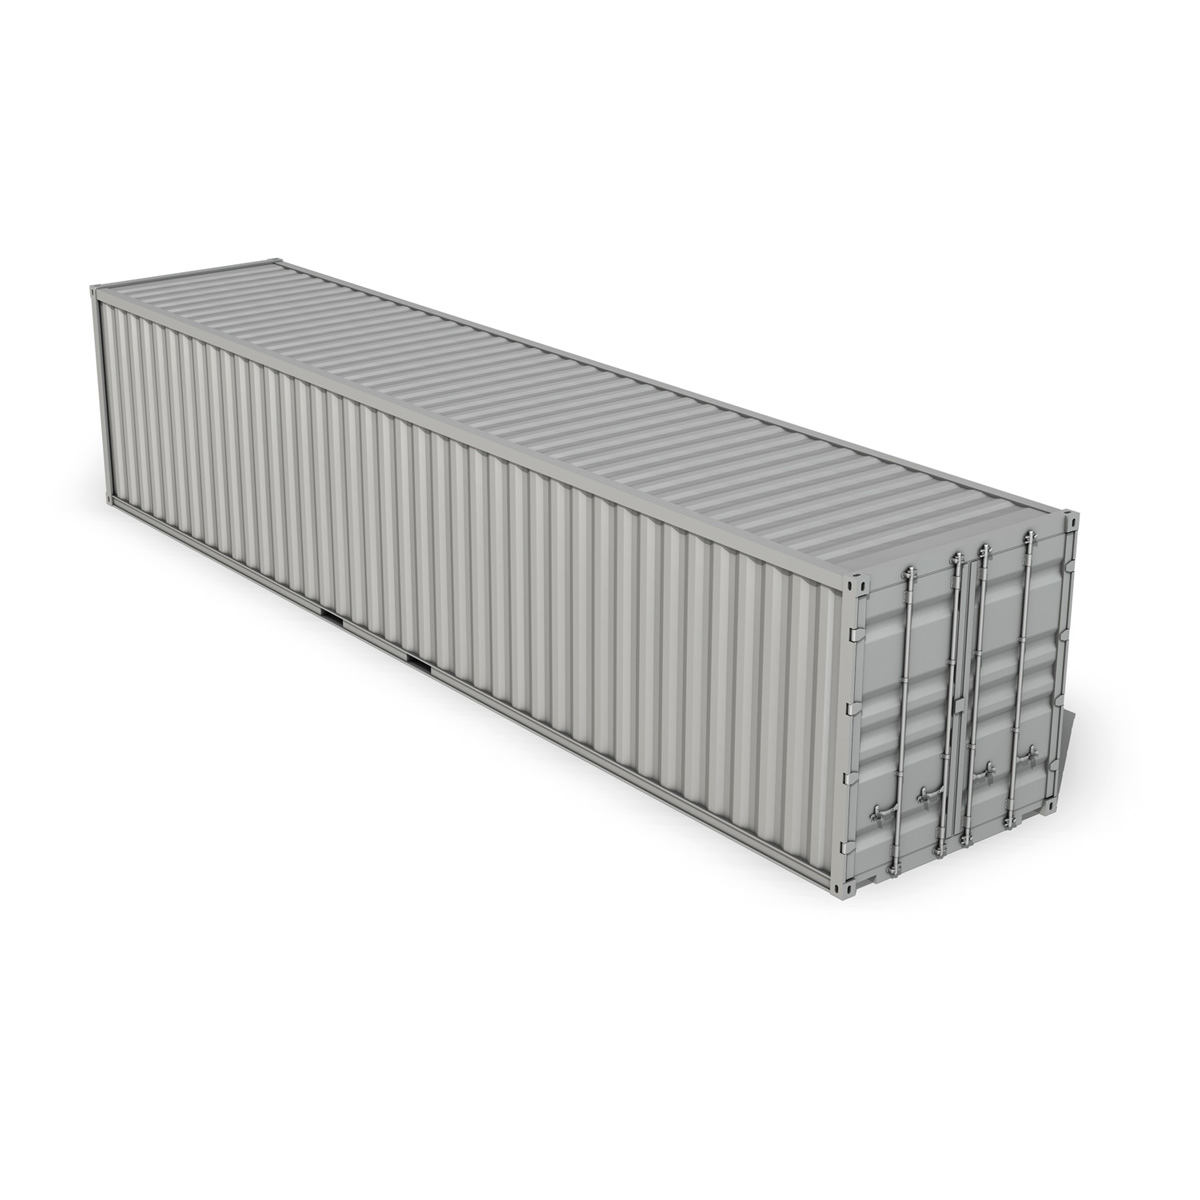 40ft shipping container – k line 3d model 3ds fbx lwo lw lws obj c4d 265124